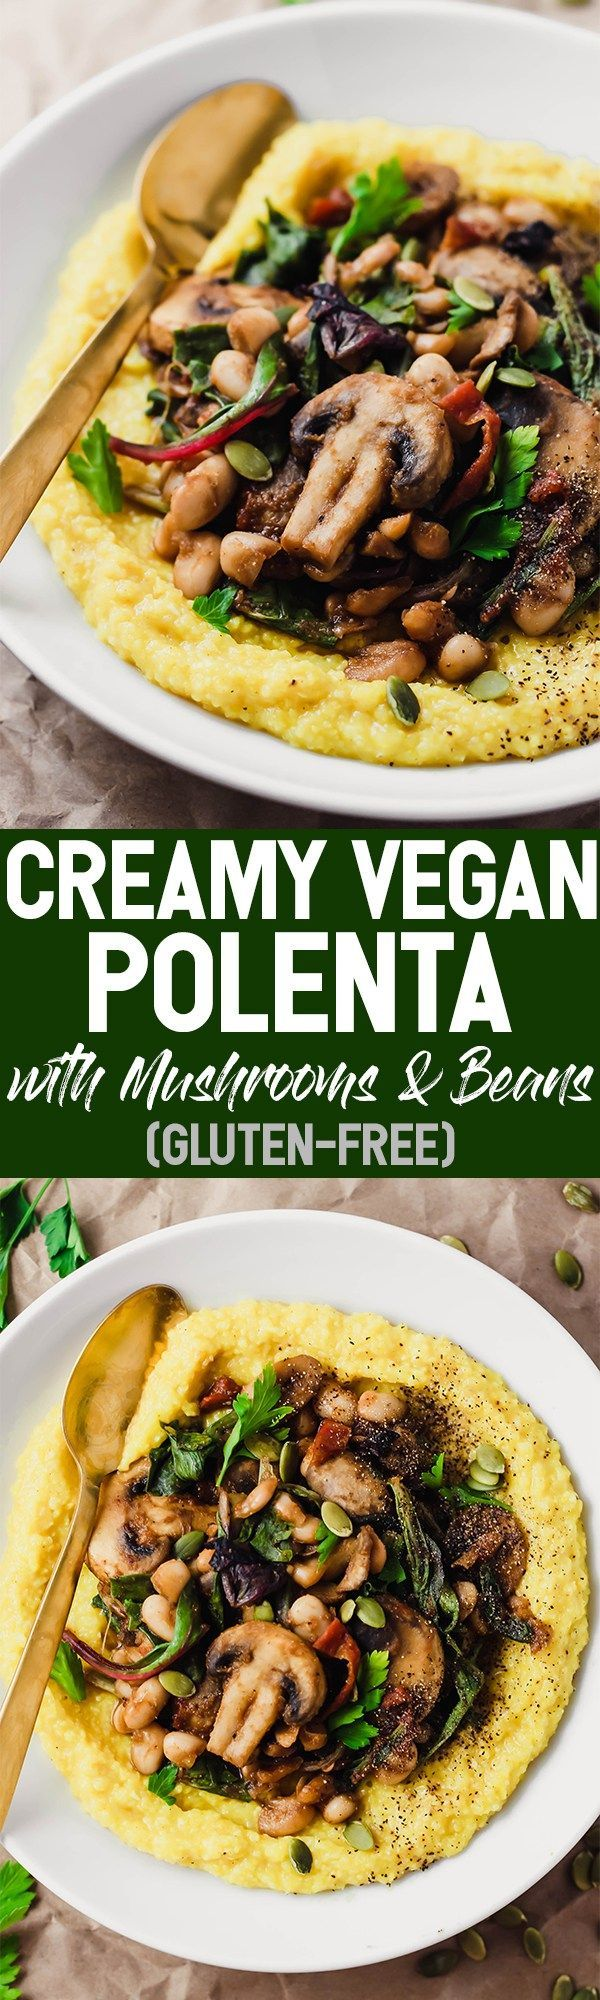 This Creamy Vegan Polenta with Mushrooms and Beans is an easy 30-minute dinner packed with whole grains, plant protein, and vegetables. Leftovers make great lunches! @Pompeian #TrendingInTheKitchen #sponsor